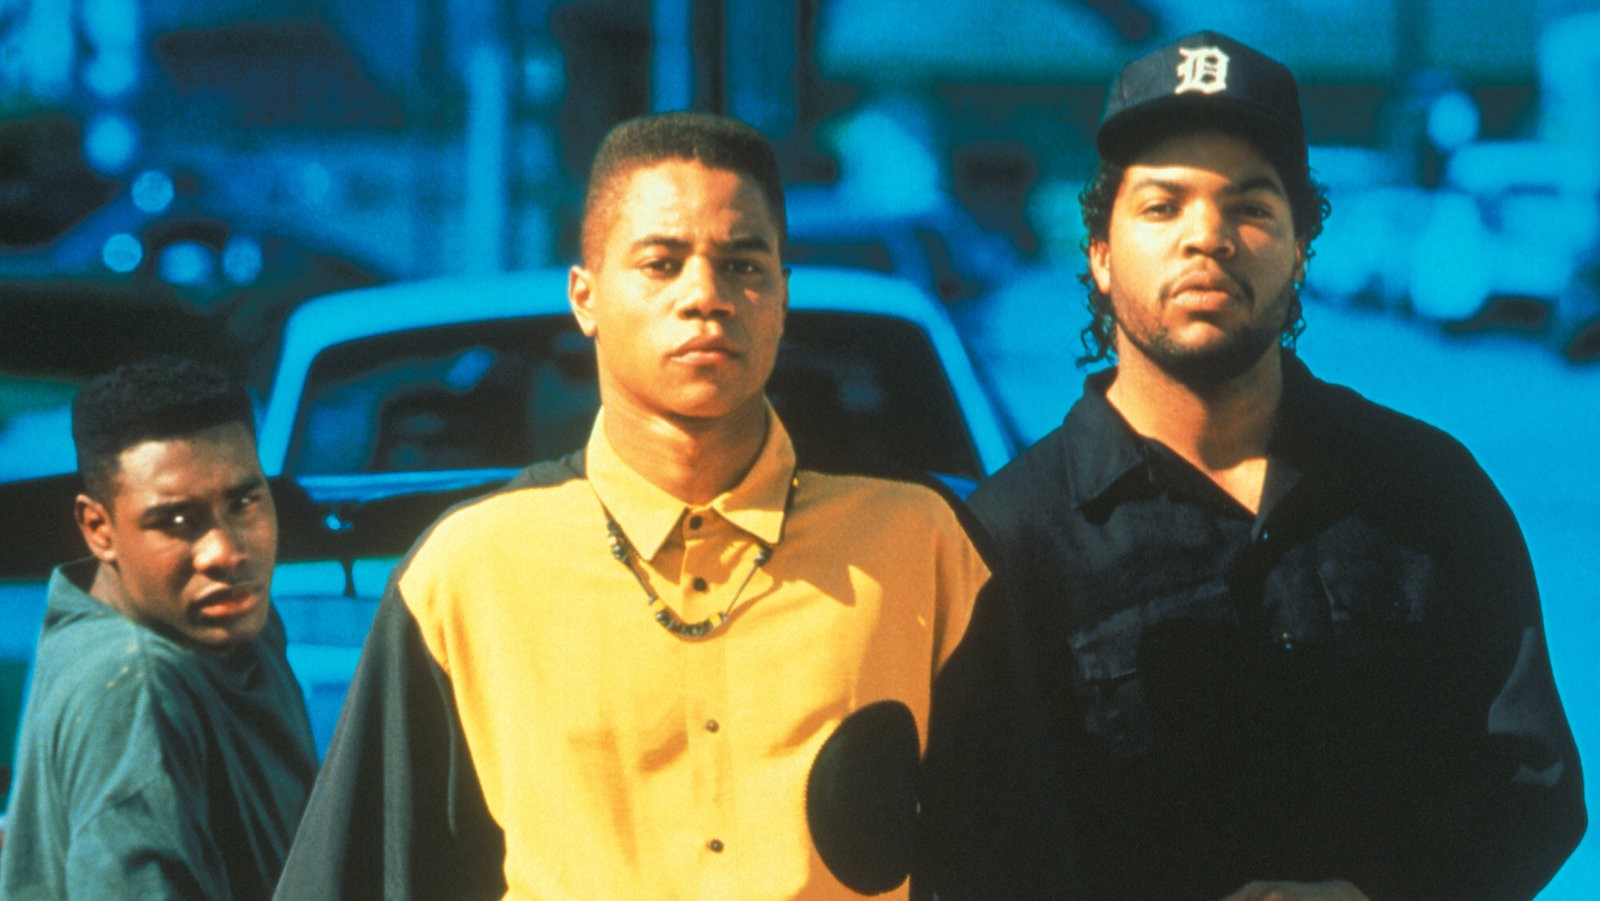 The image used on the promotional poster for Boyz n the Hood. From left to right: Morris Chestnut as Ricky, Cuba Gooding Jr. as Tre, and Ice Cube as Darren